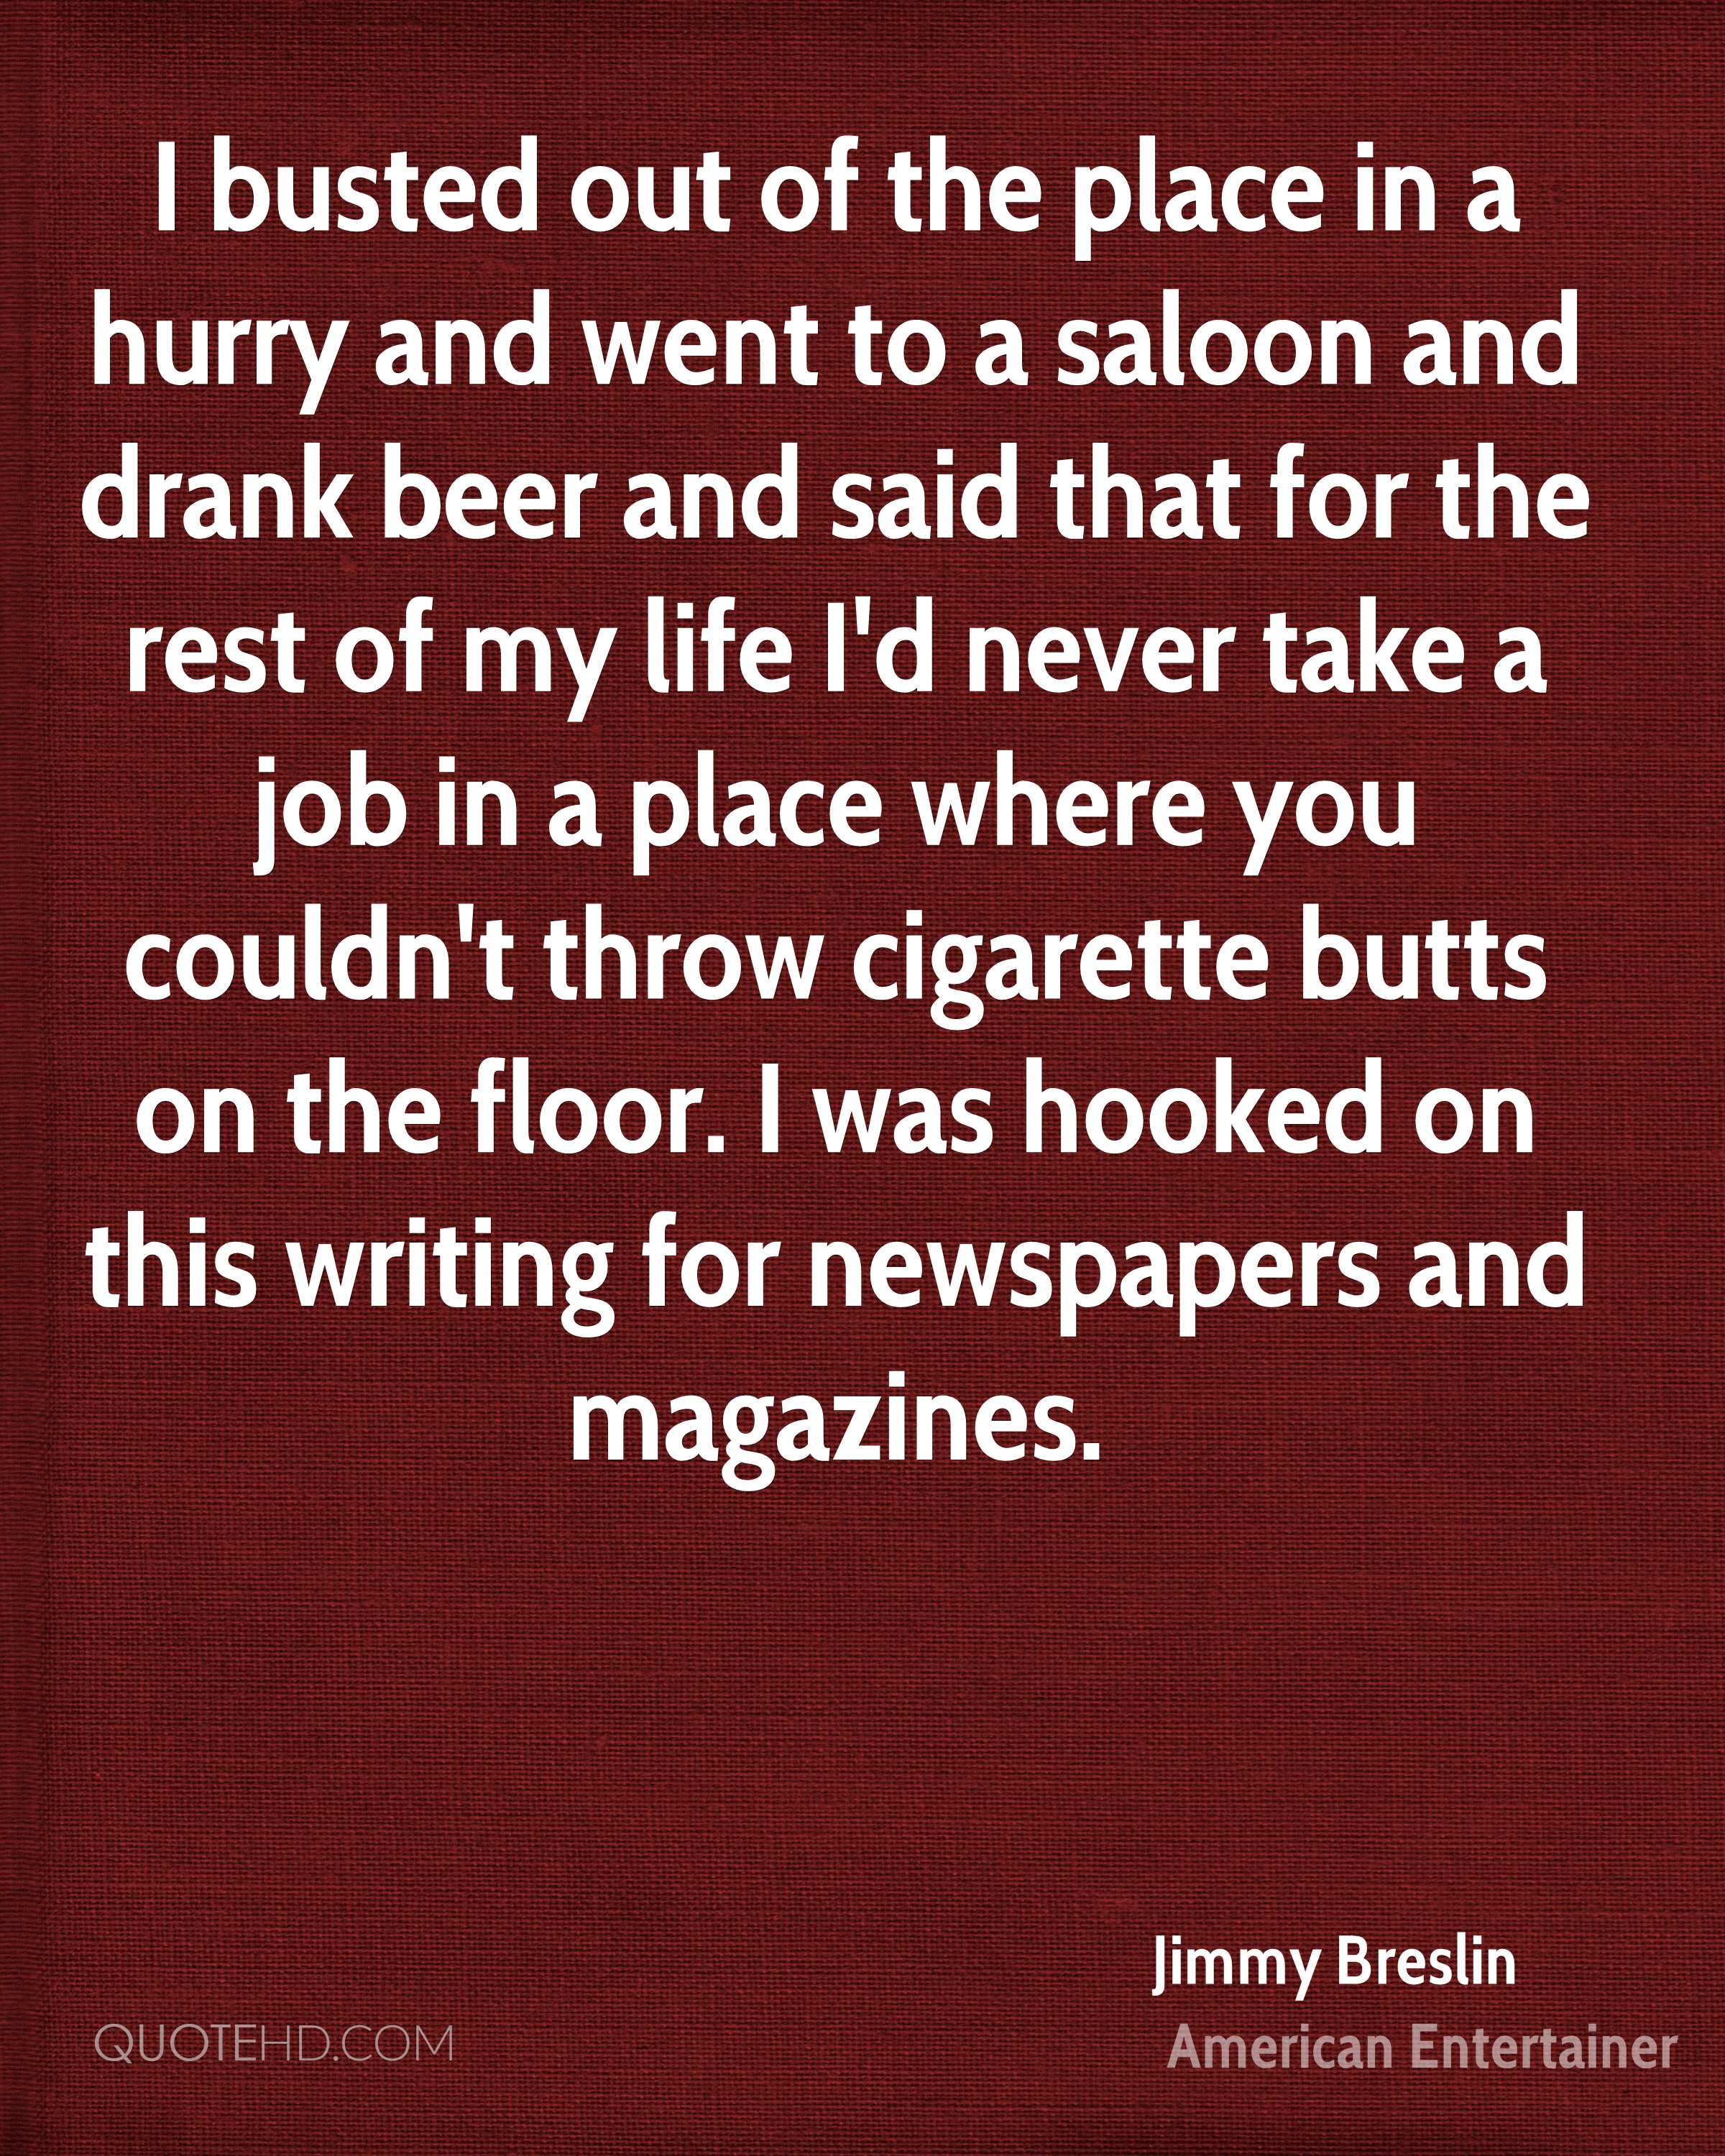 I busted out of the place in a hurry and went to a saloon and drank beer and said that for the rest of my life I'd never take a job in a place where you couldn't throw cigarette butts on the floor. I was hooked on this writing for newspapers and magazines.